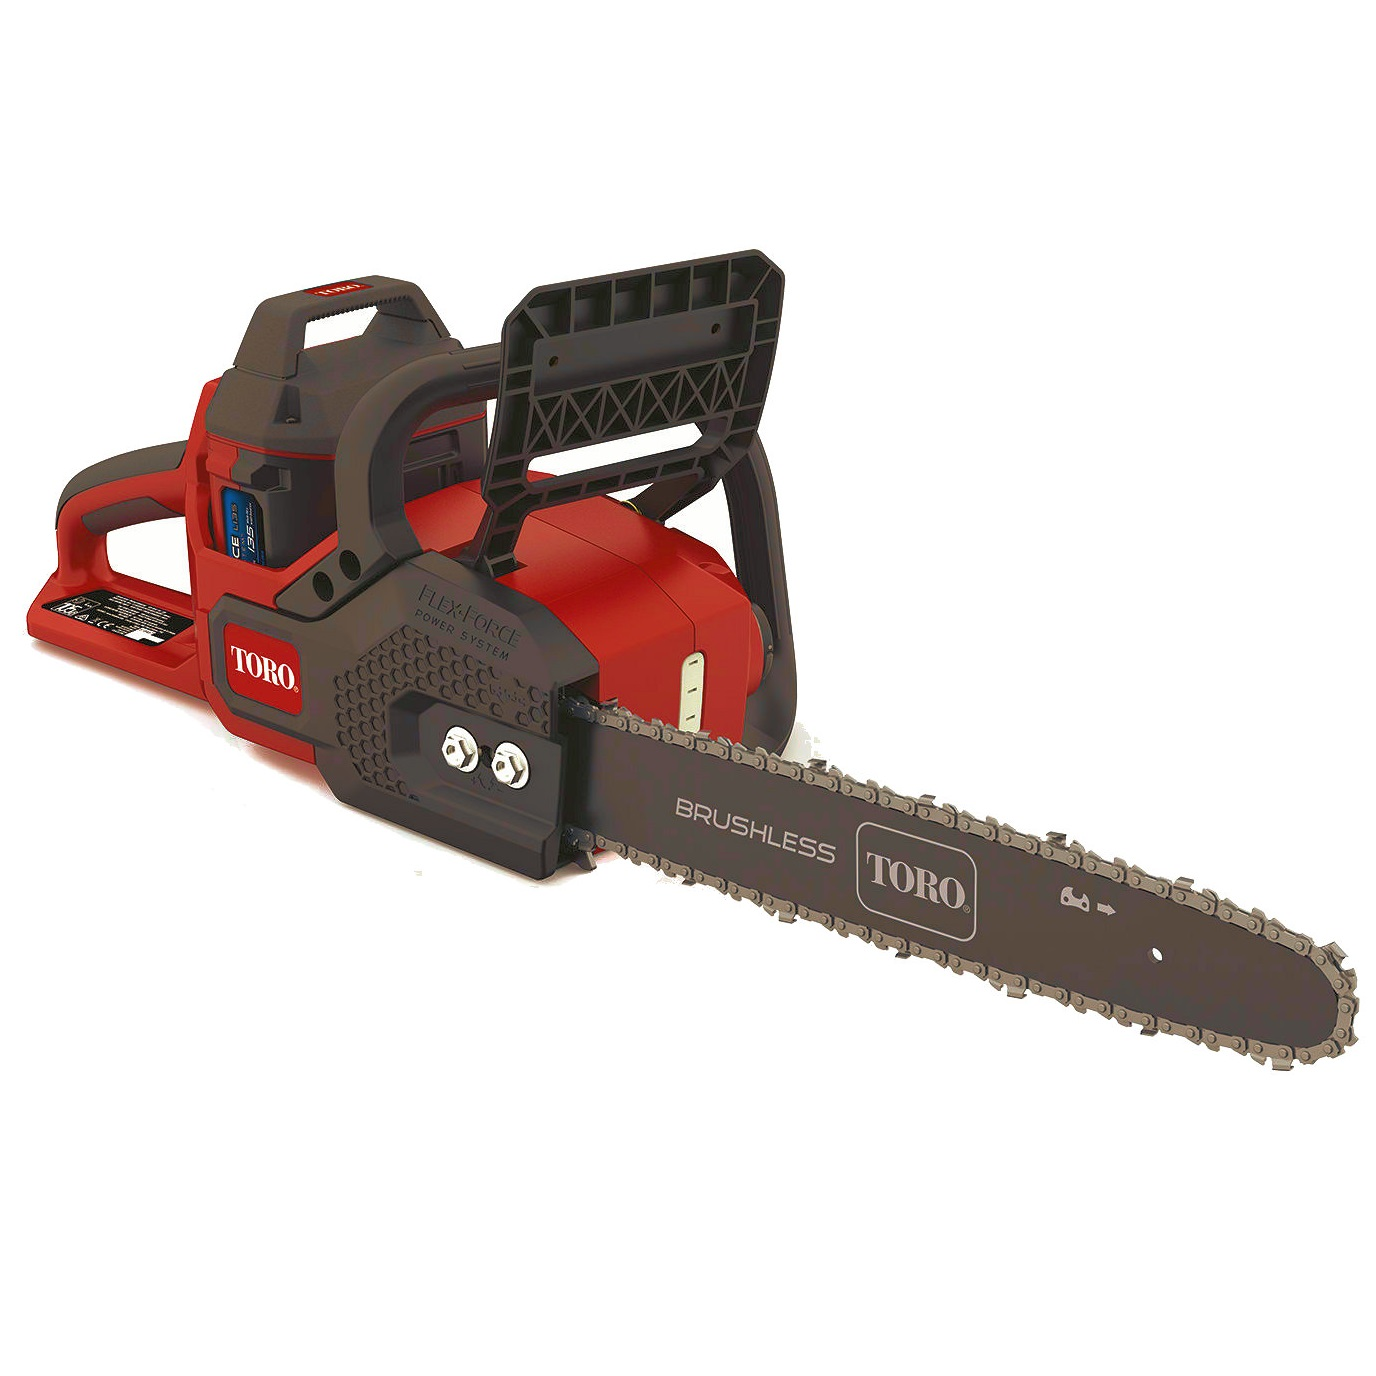 TORO FLEX-FORCE Cordless Chainsaw Shell Only